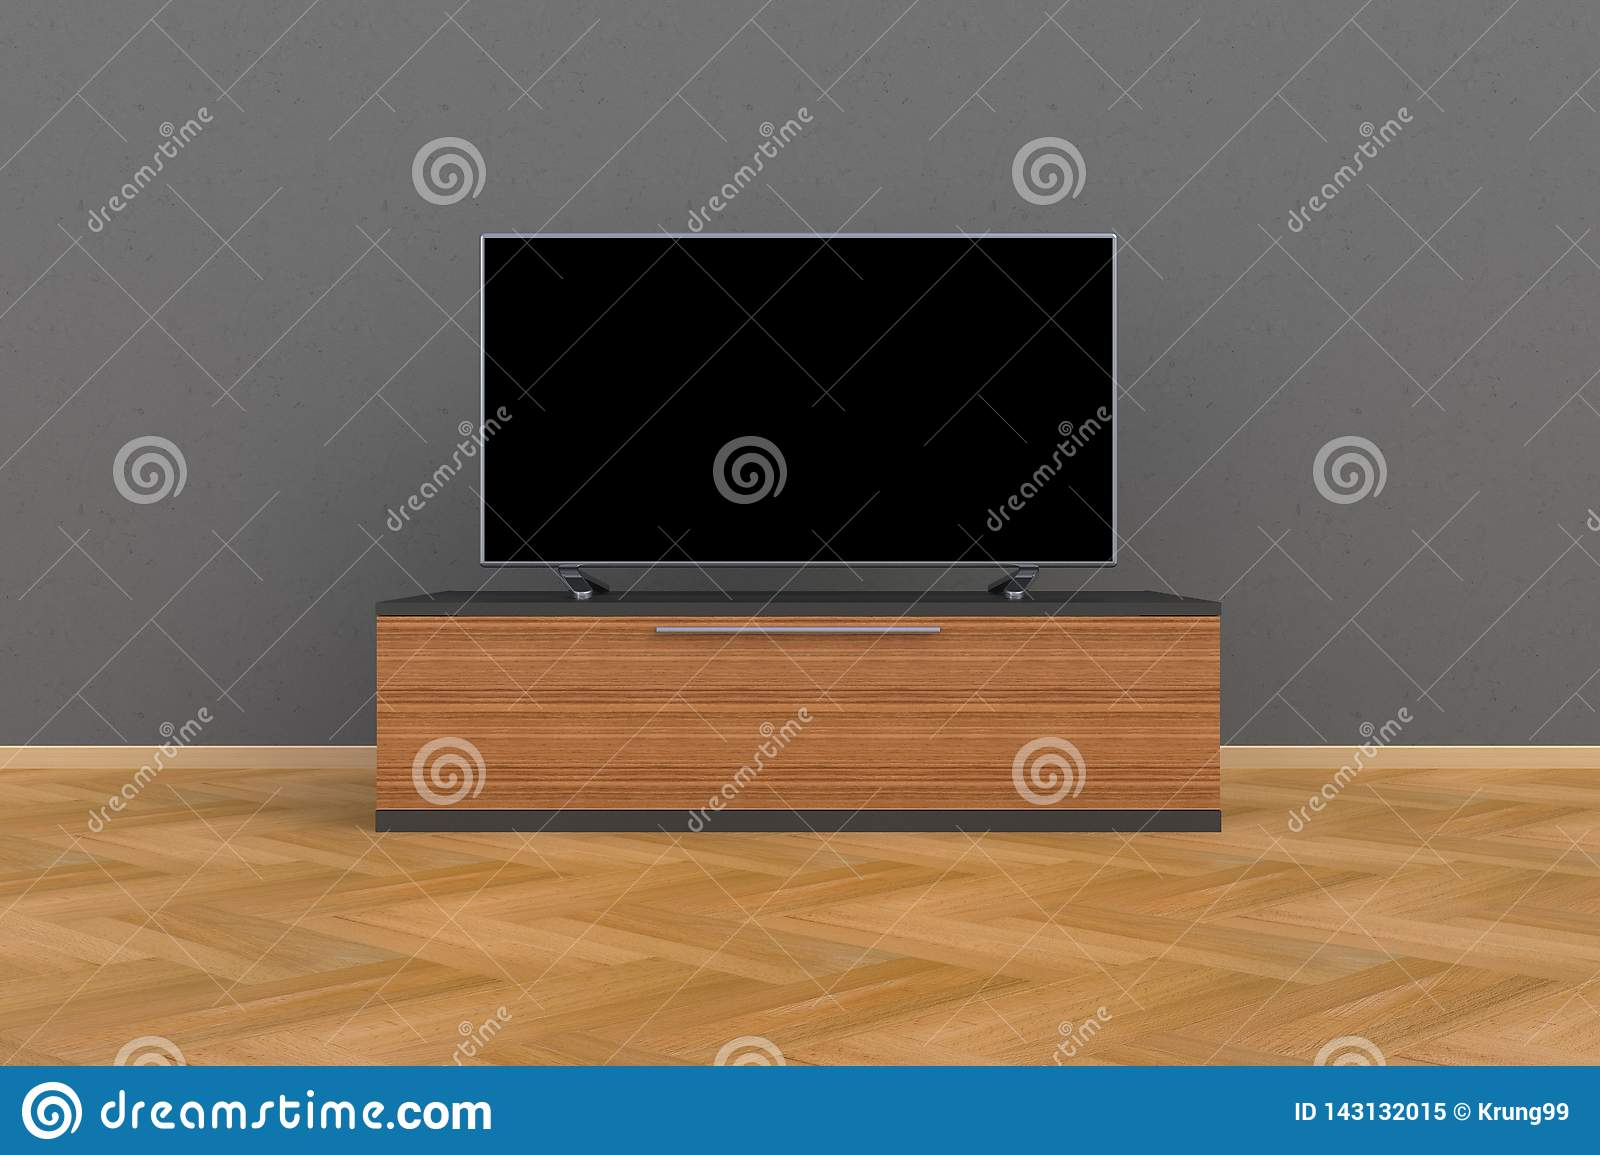 Interior of empty room with TV, Living room led tv on gray wall with wooden table modern loft style